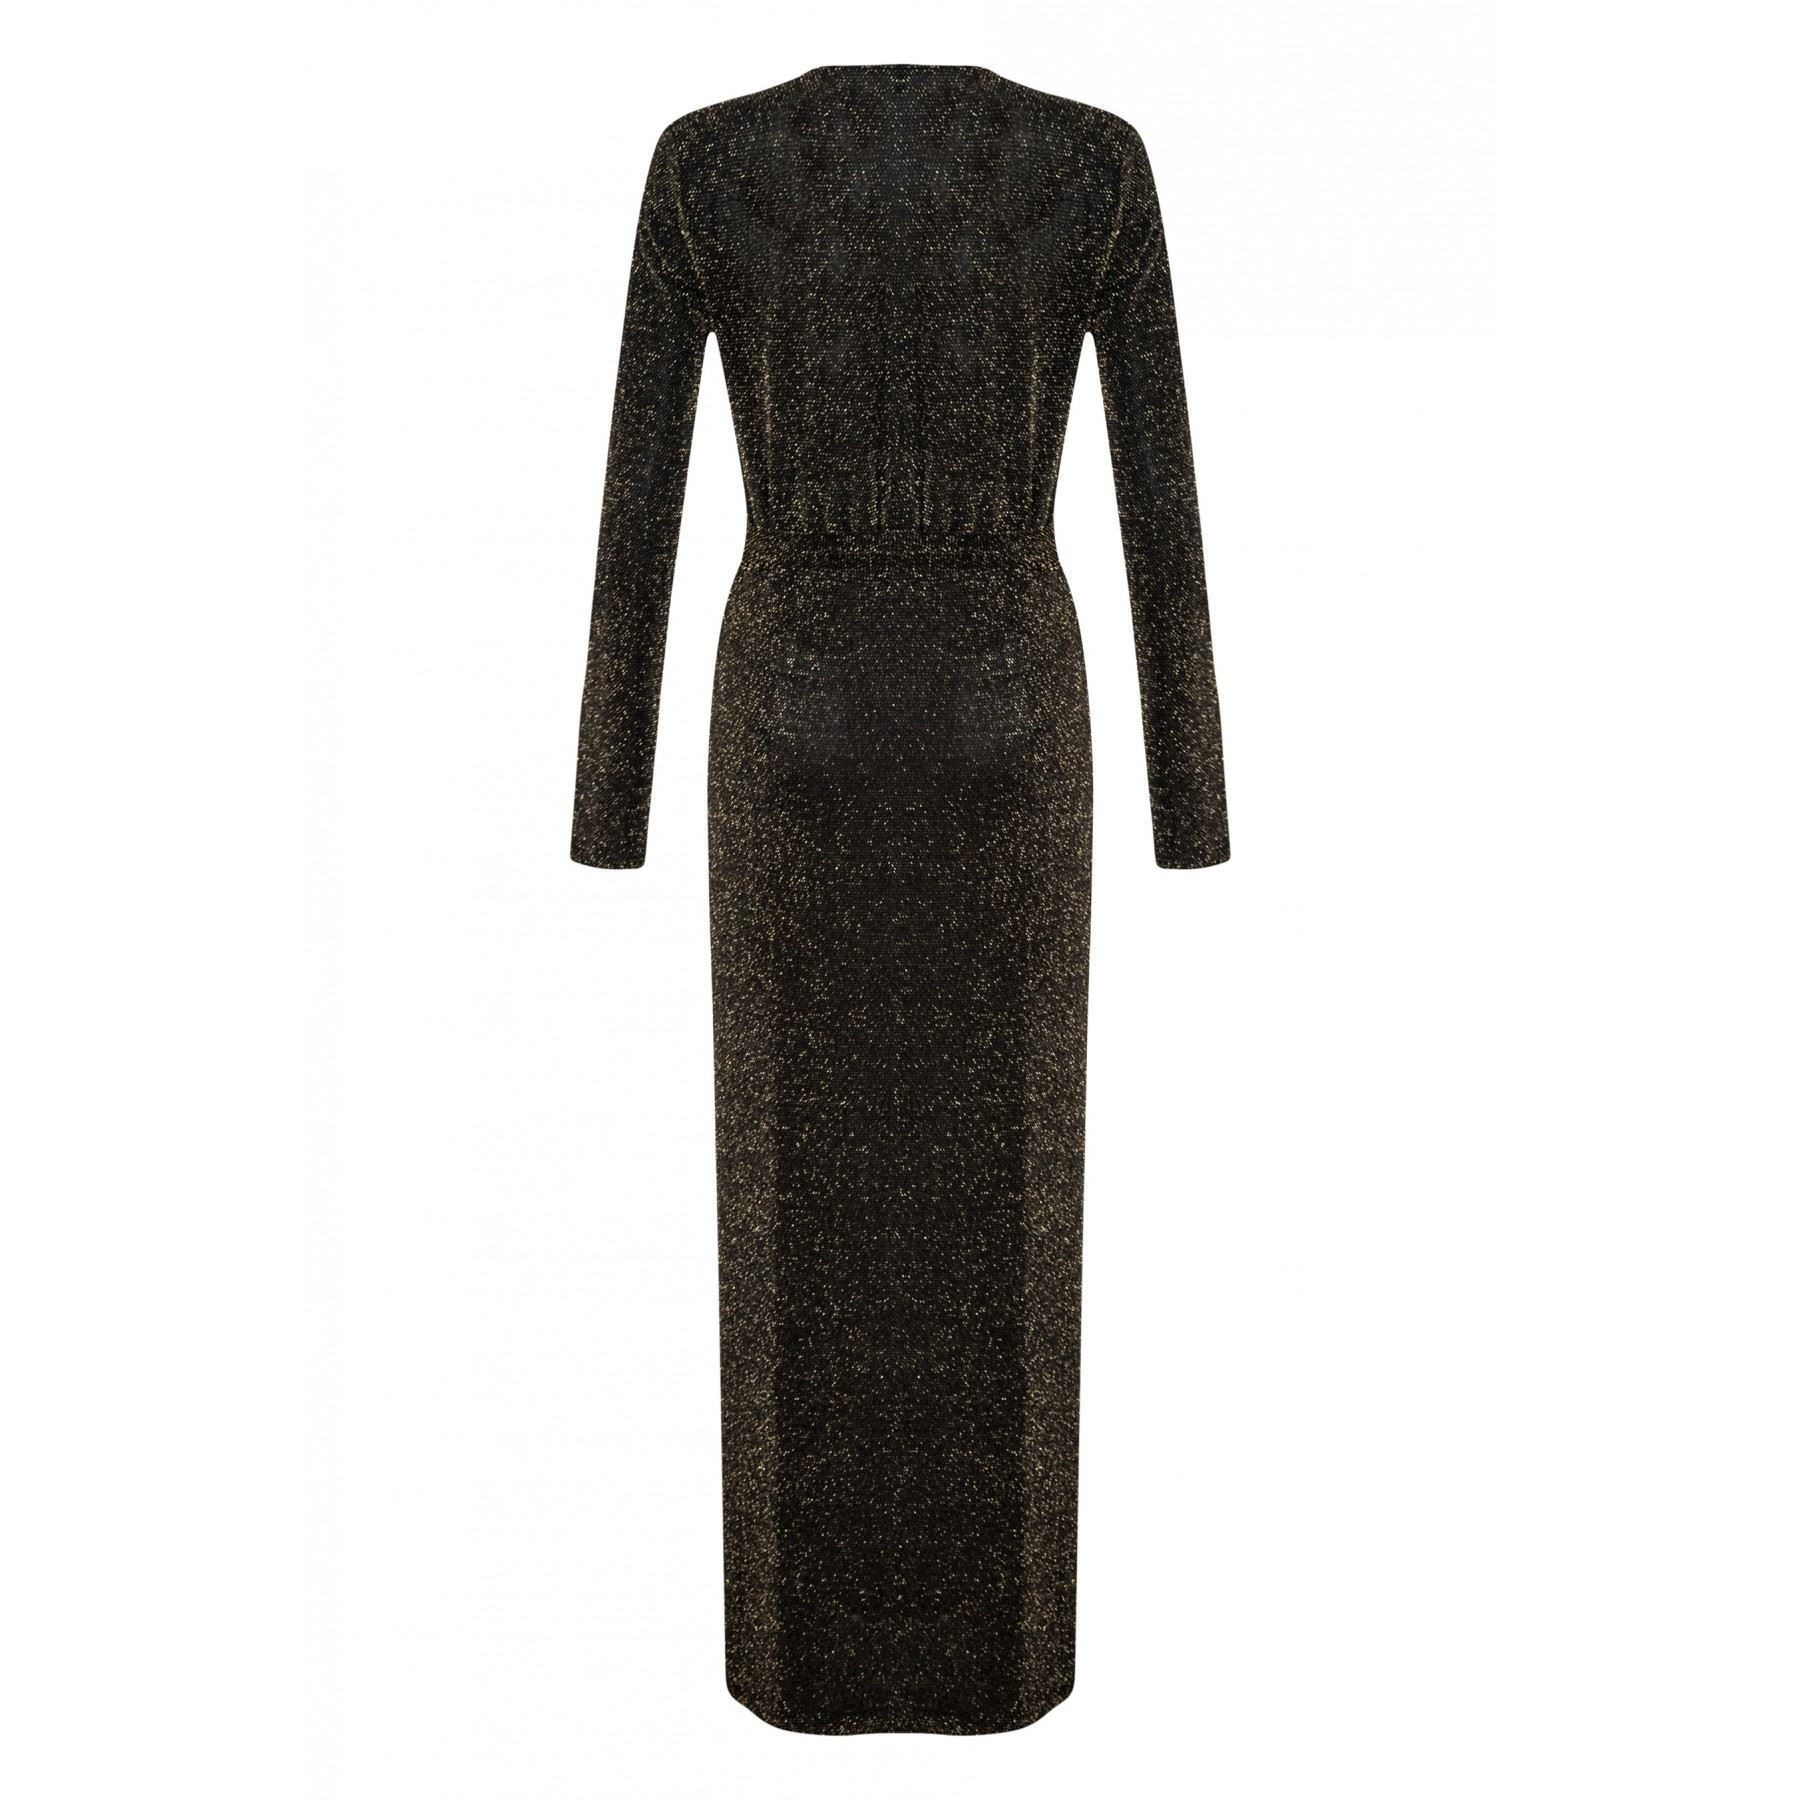 WOMENS SAM FAIERS INSPIRED GLITTER RUCHED V NECK SLIT LONG MAXI BODYCON DRESS